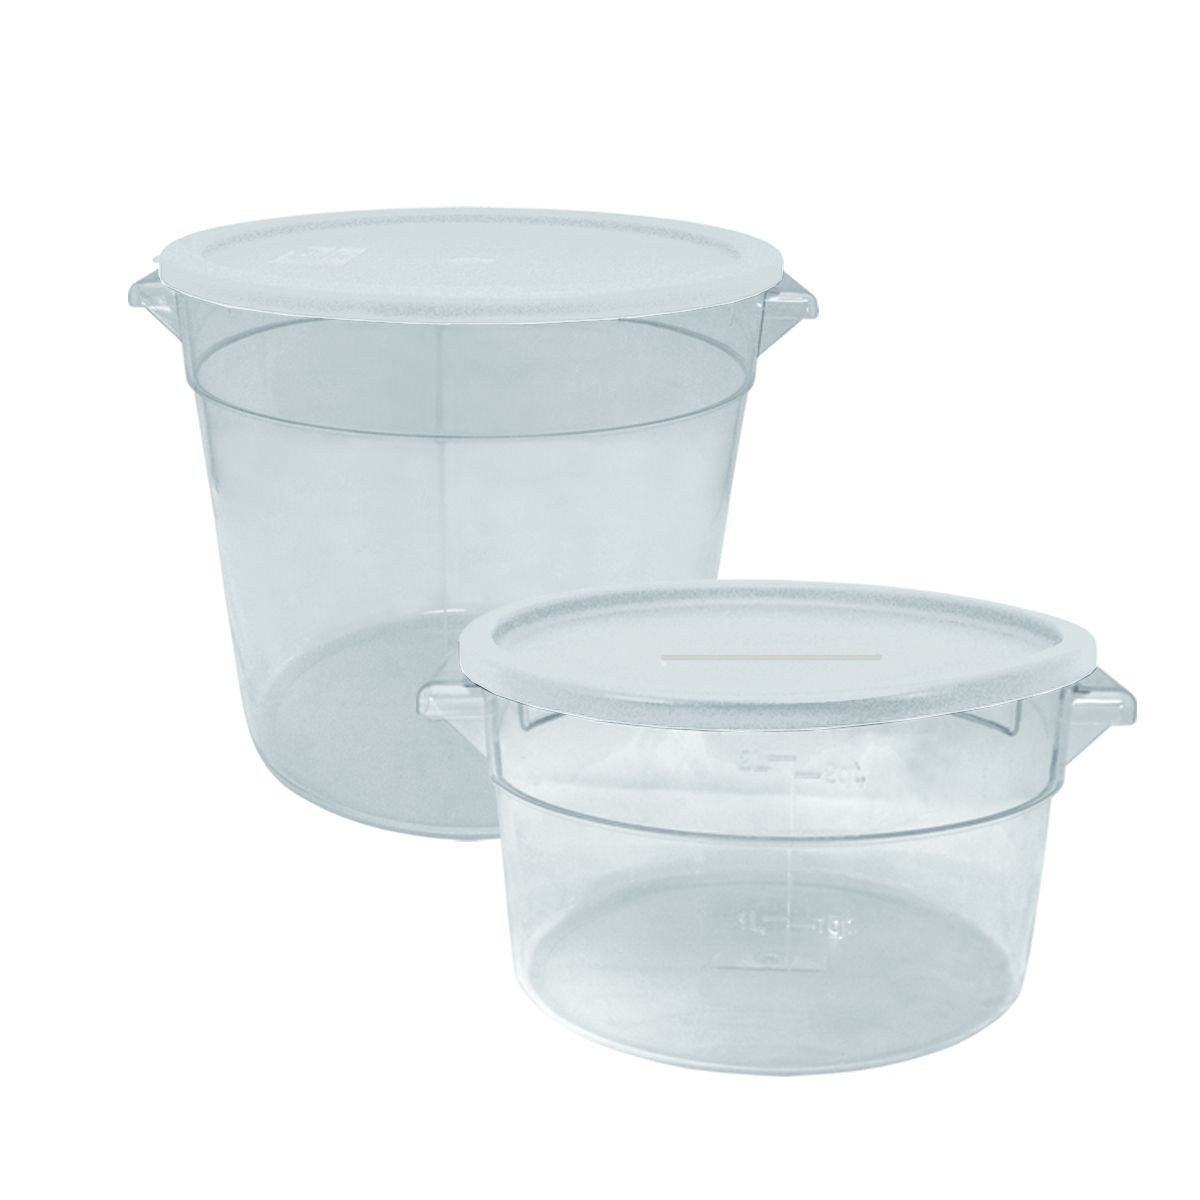 Update International SCRL-SPE White Polycarbonate Cover for 2-4 Qt. Round Storage Container